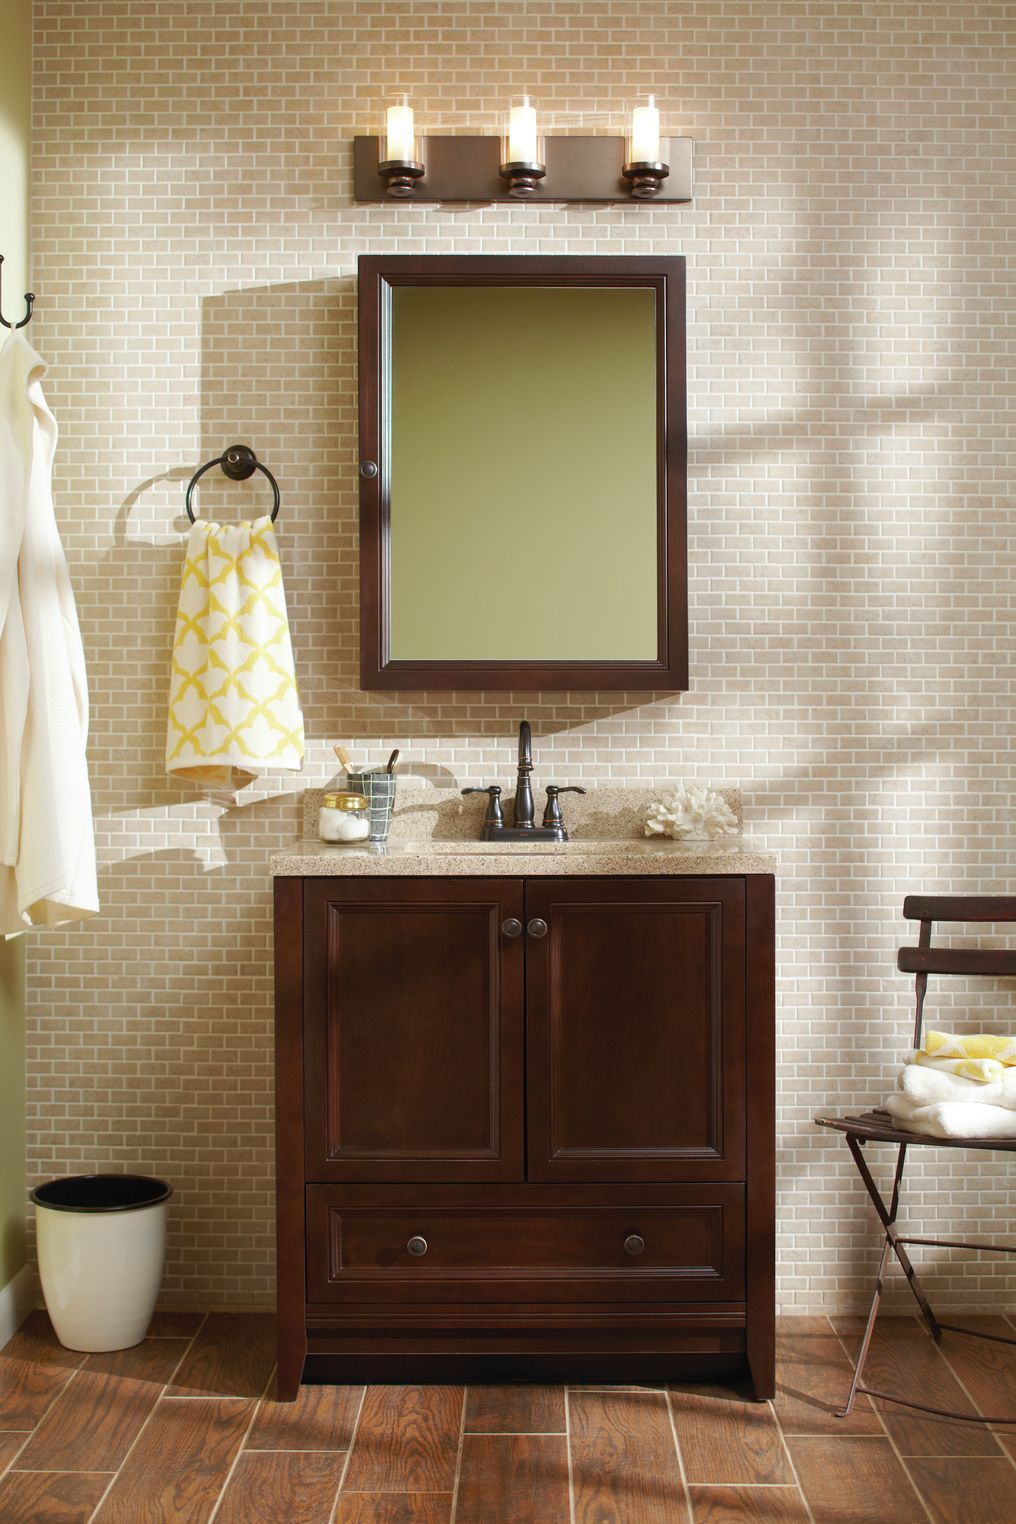 Photo of 13 Clever Ways How to Improve Craftsman Style Bathroom Fixtures